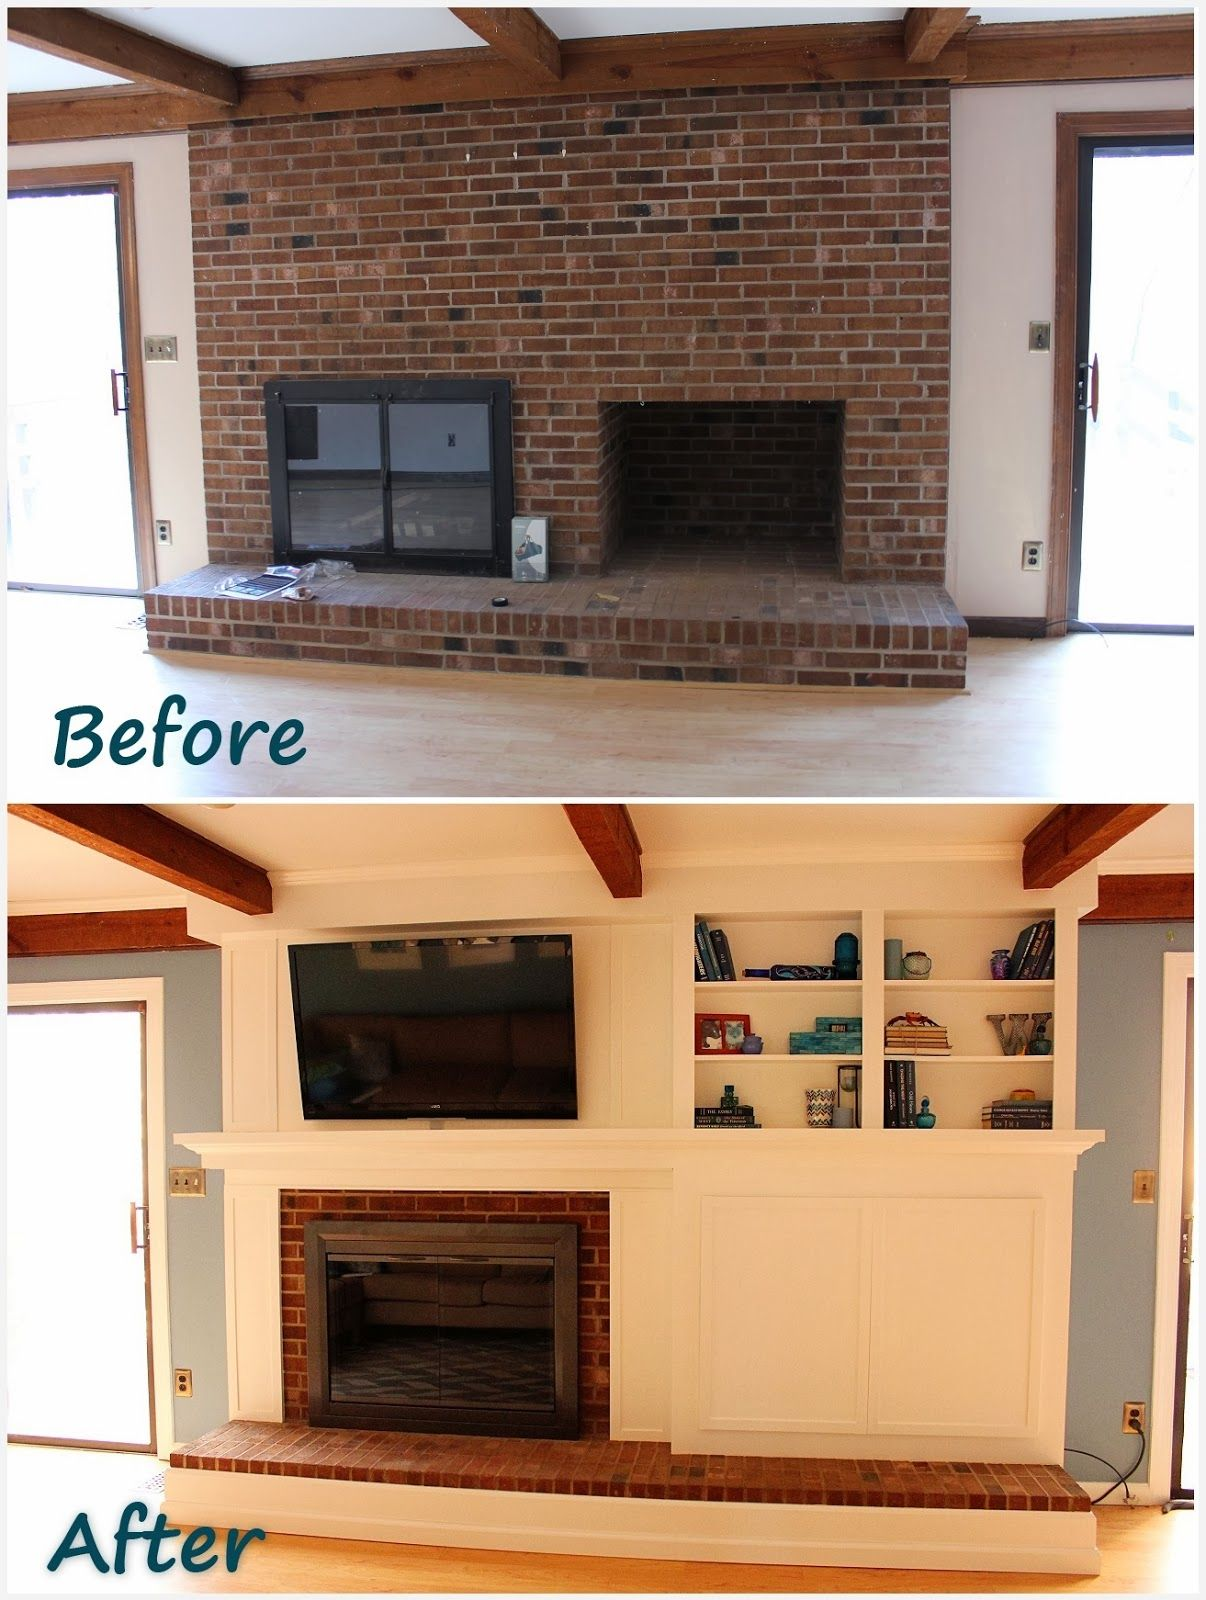 Fireplace Remodel Diy A Fireplace Facade To Cover An Old